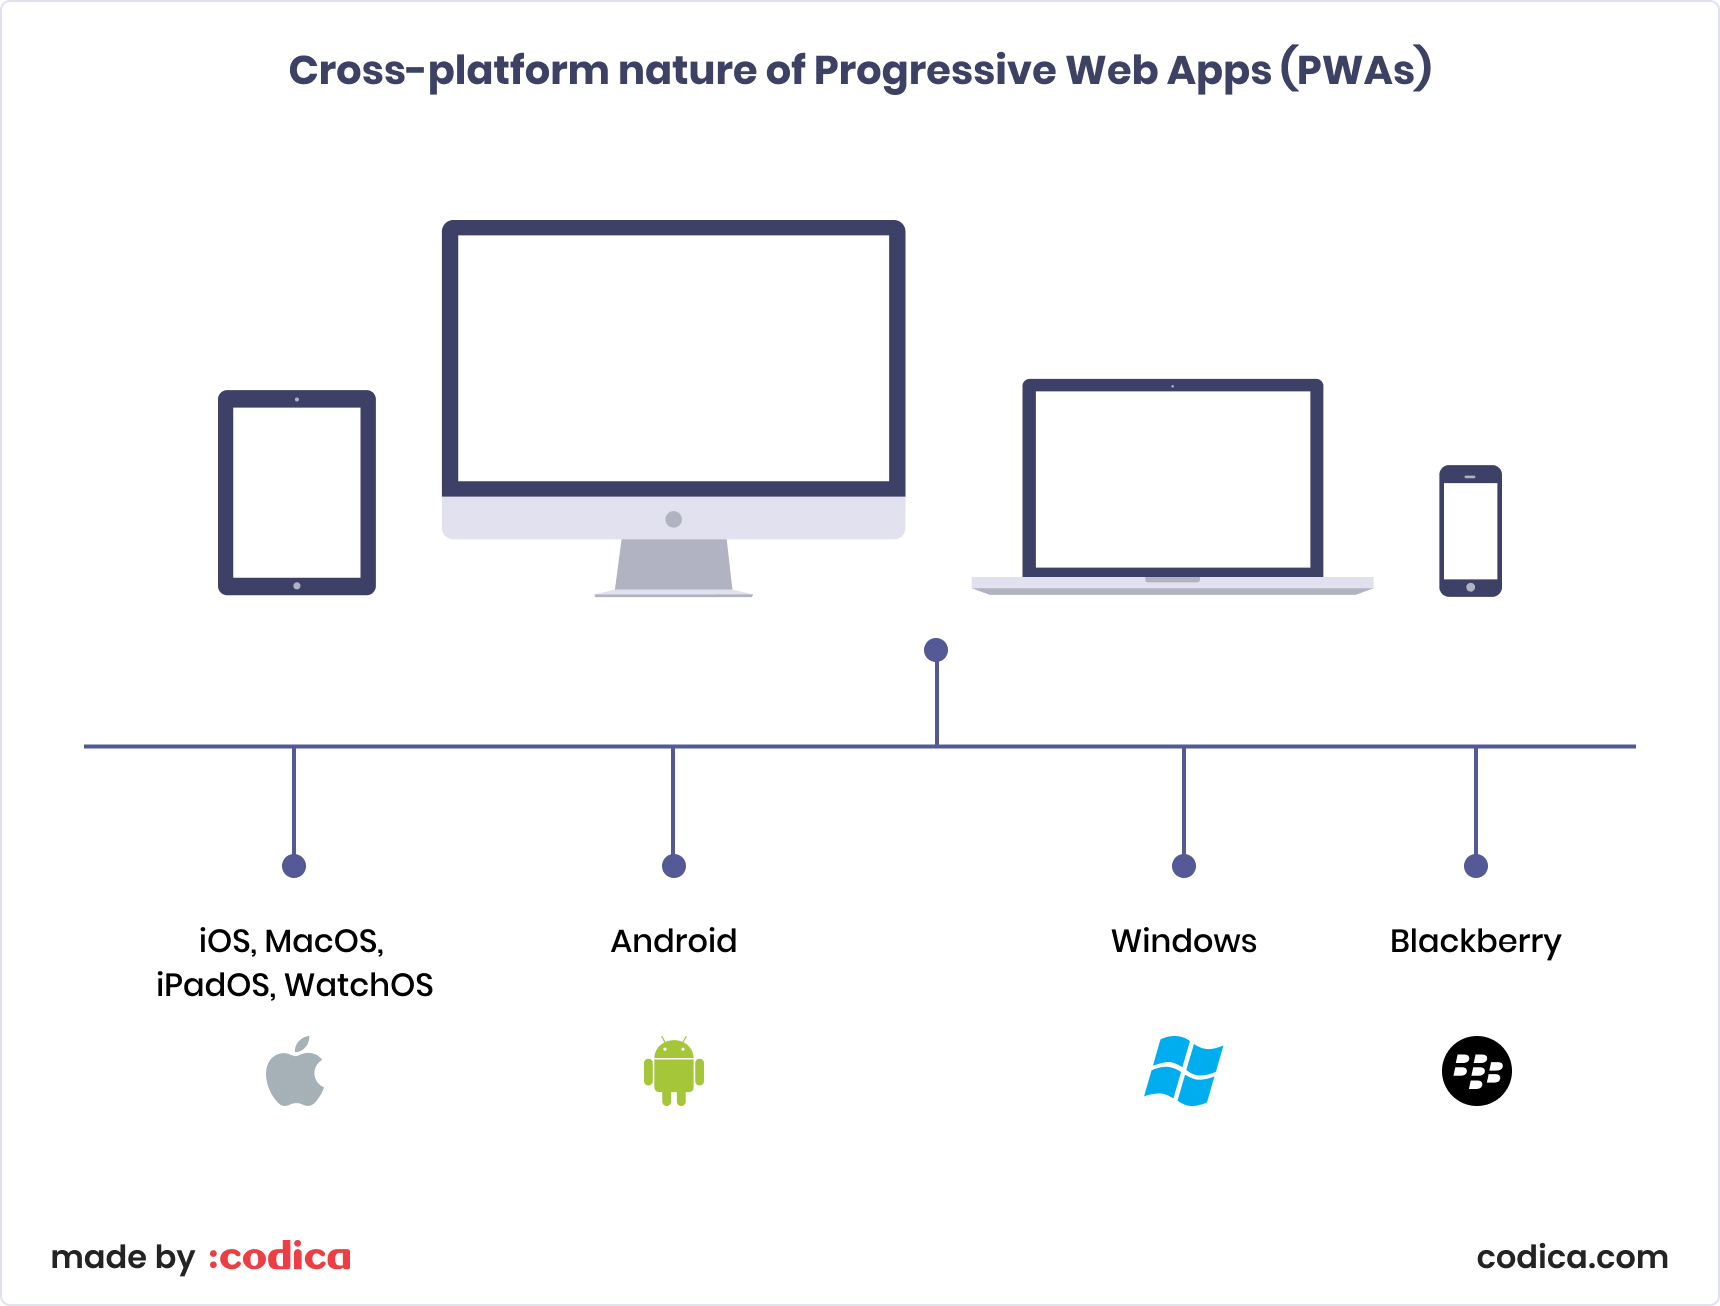 Cross-platform nature of PWA